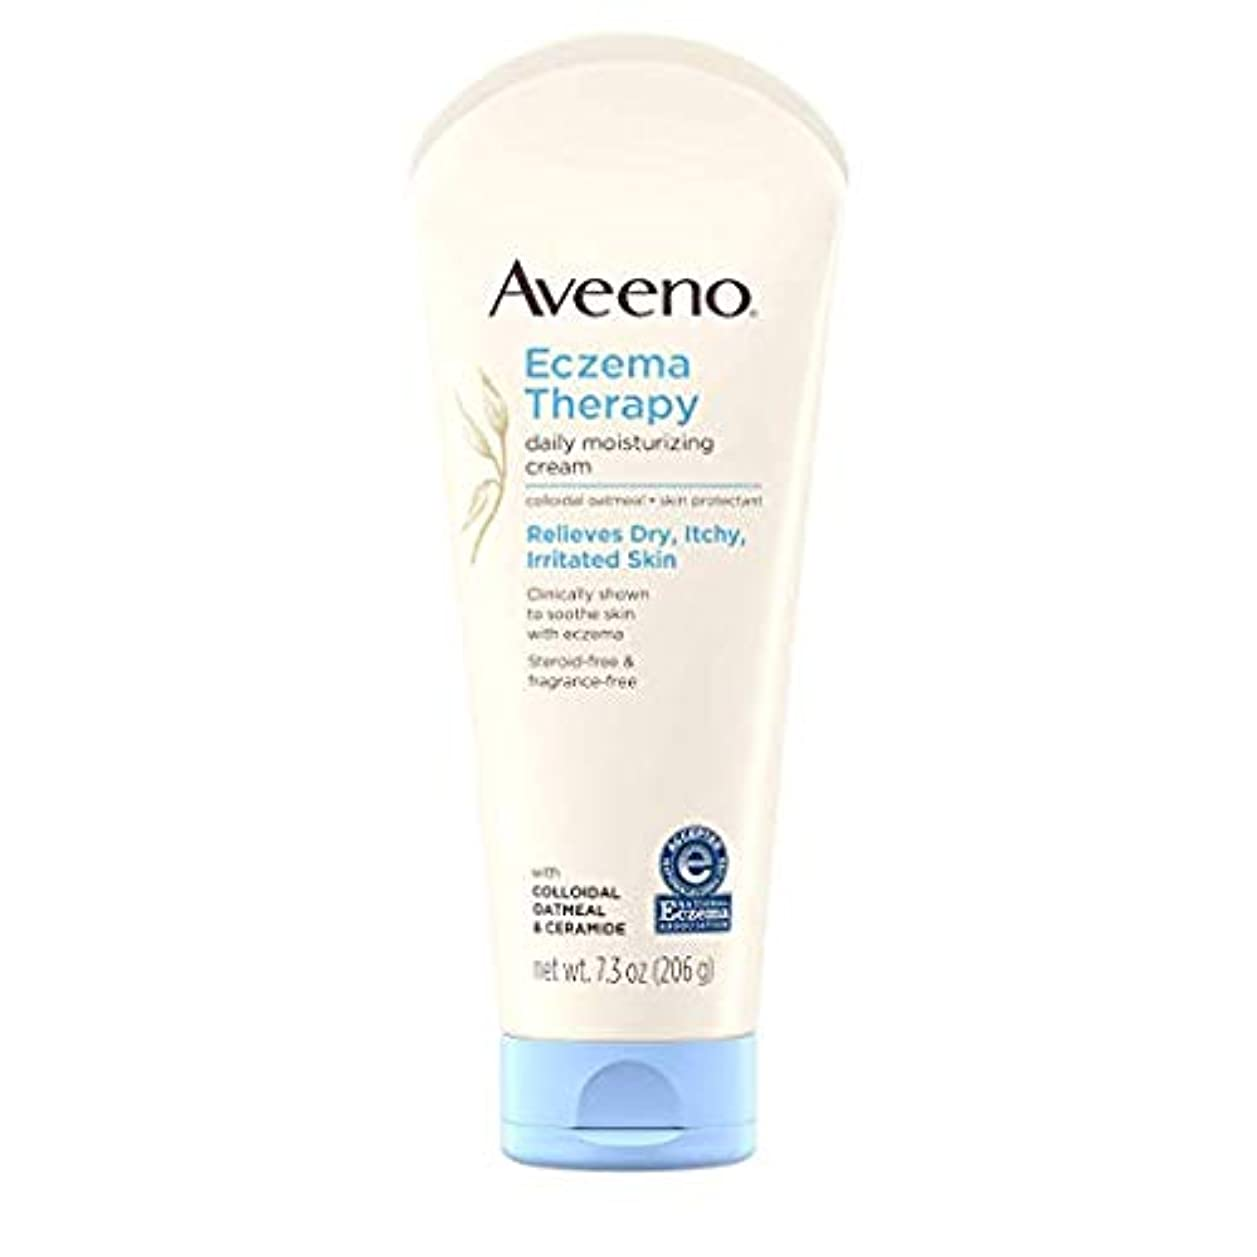 Aveeno - Eczema Therapy Moisturizing Cream - 7.3 oz (206 g) アビーノ 保湿クリーム [並行輸入品]